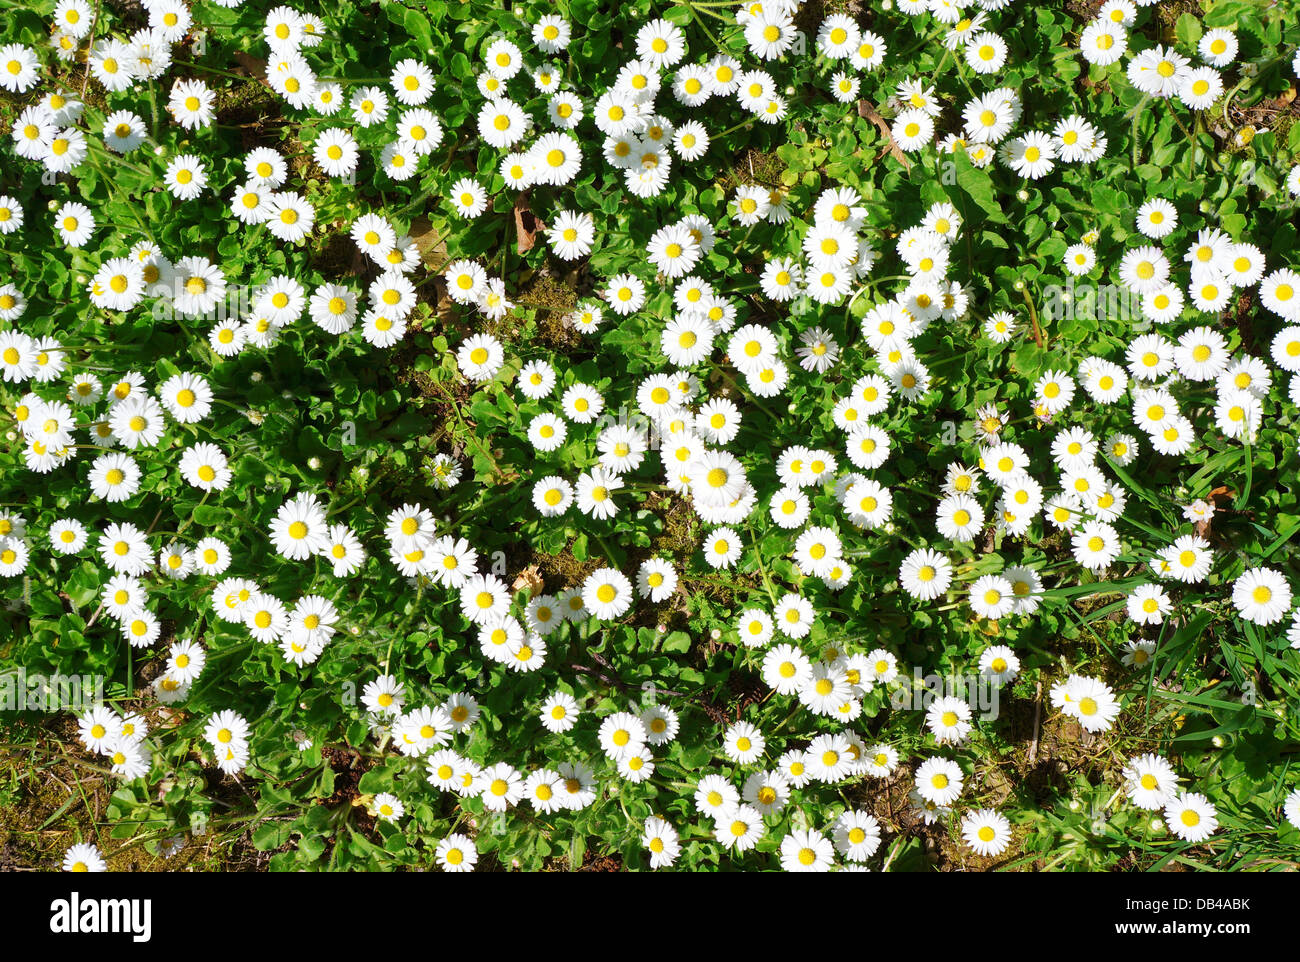 White Cobbles Or Stones As Ground Cover Stock Photos White Cobbles